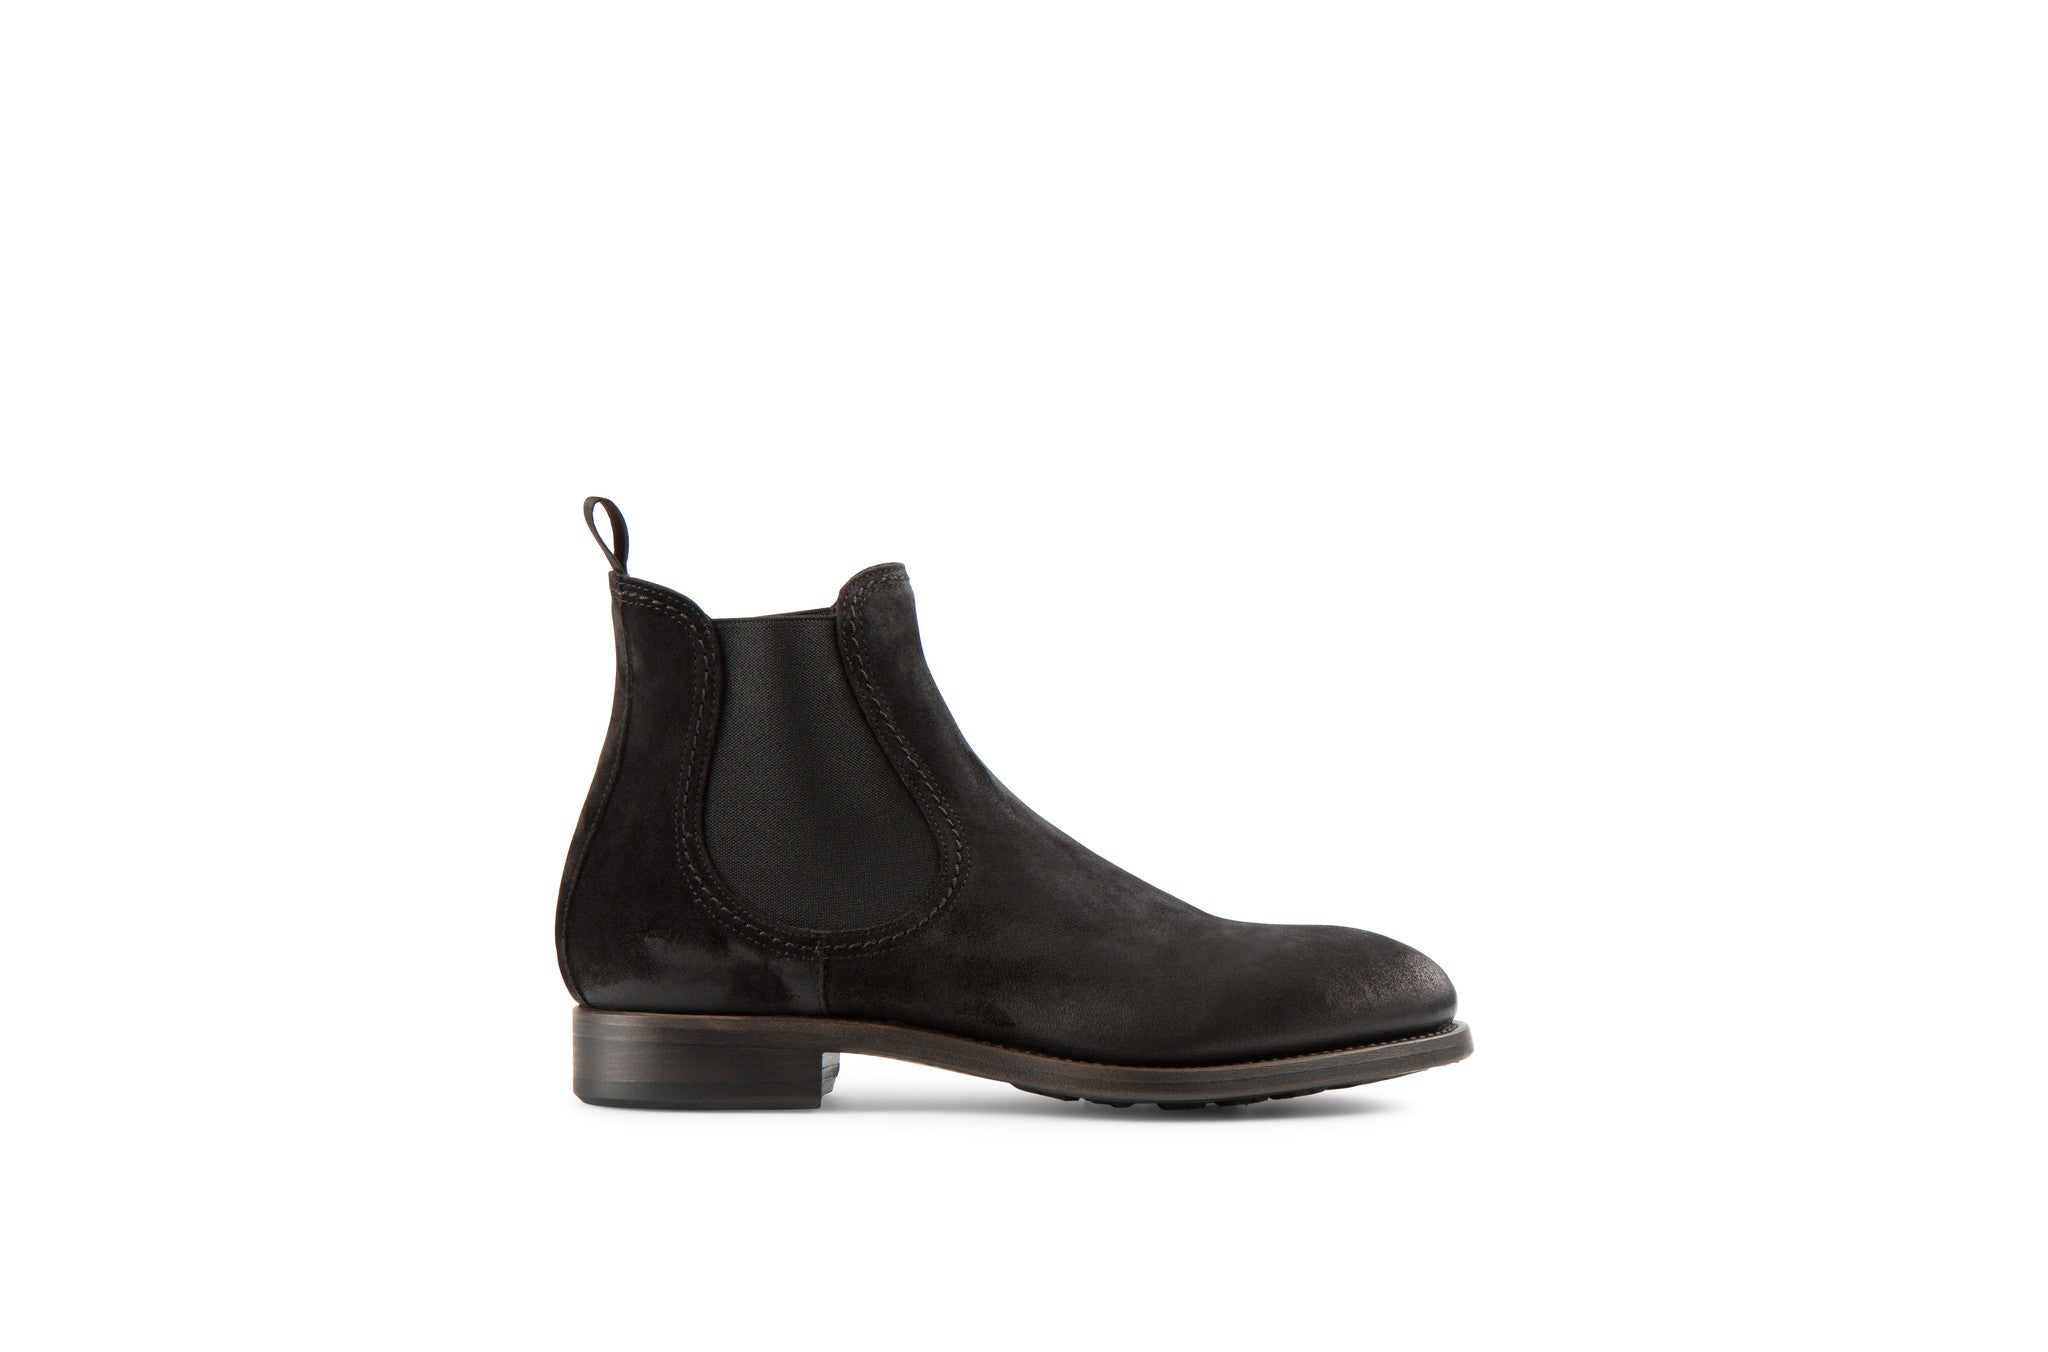 Hanoi Black Suede Leather Chelsea Boots